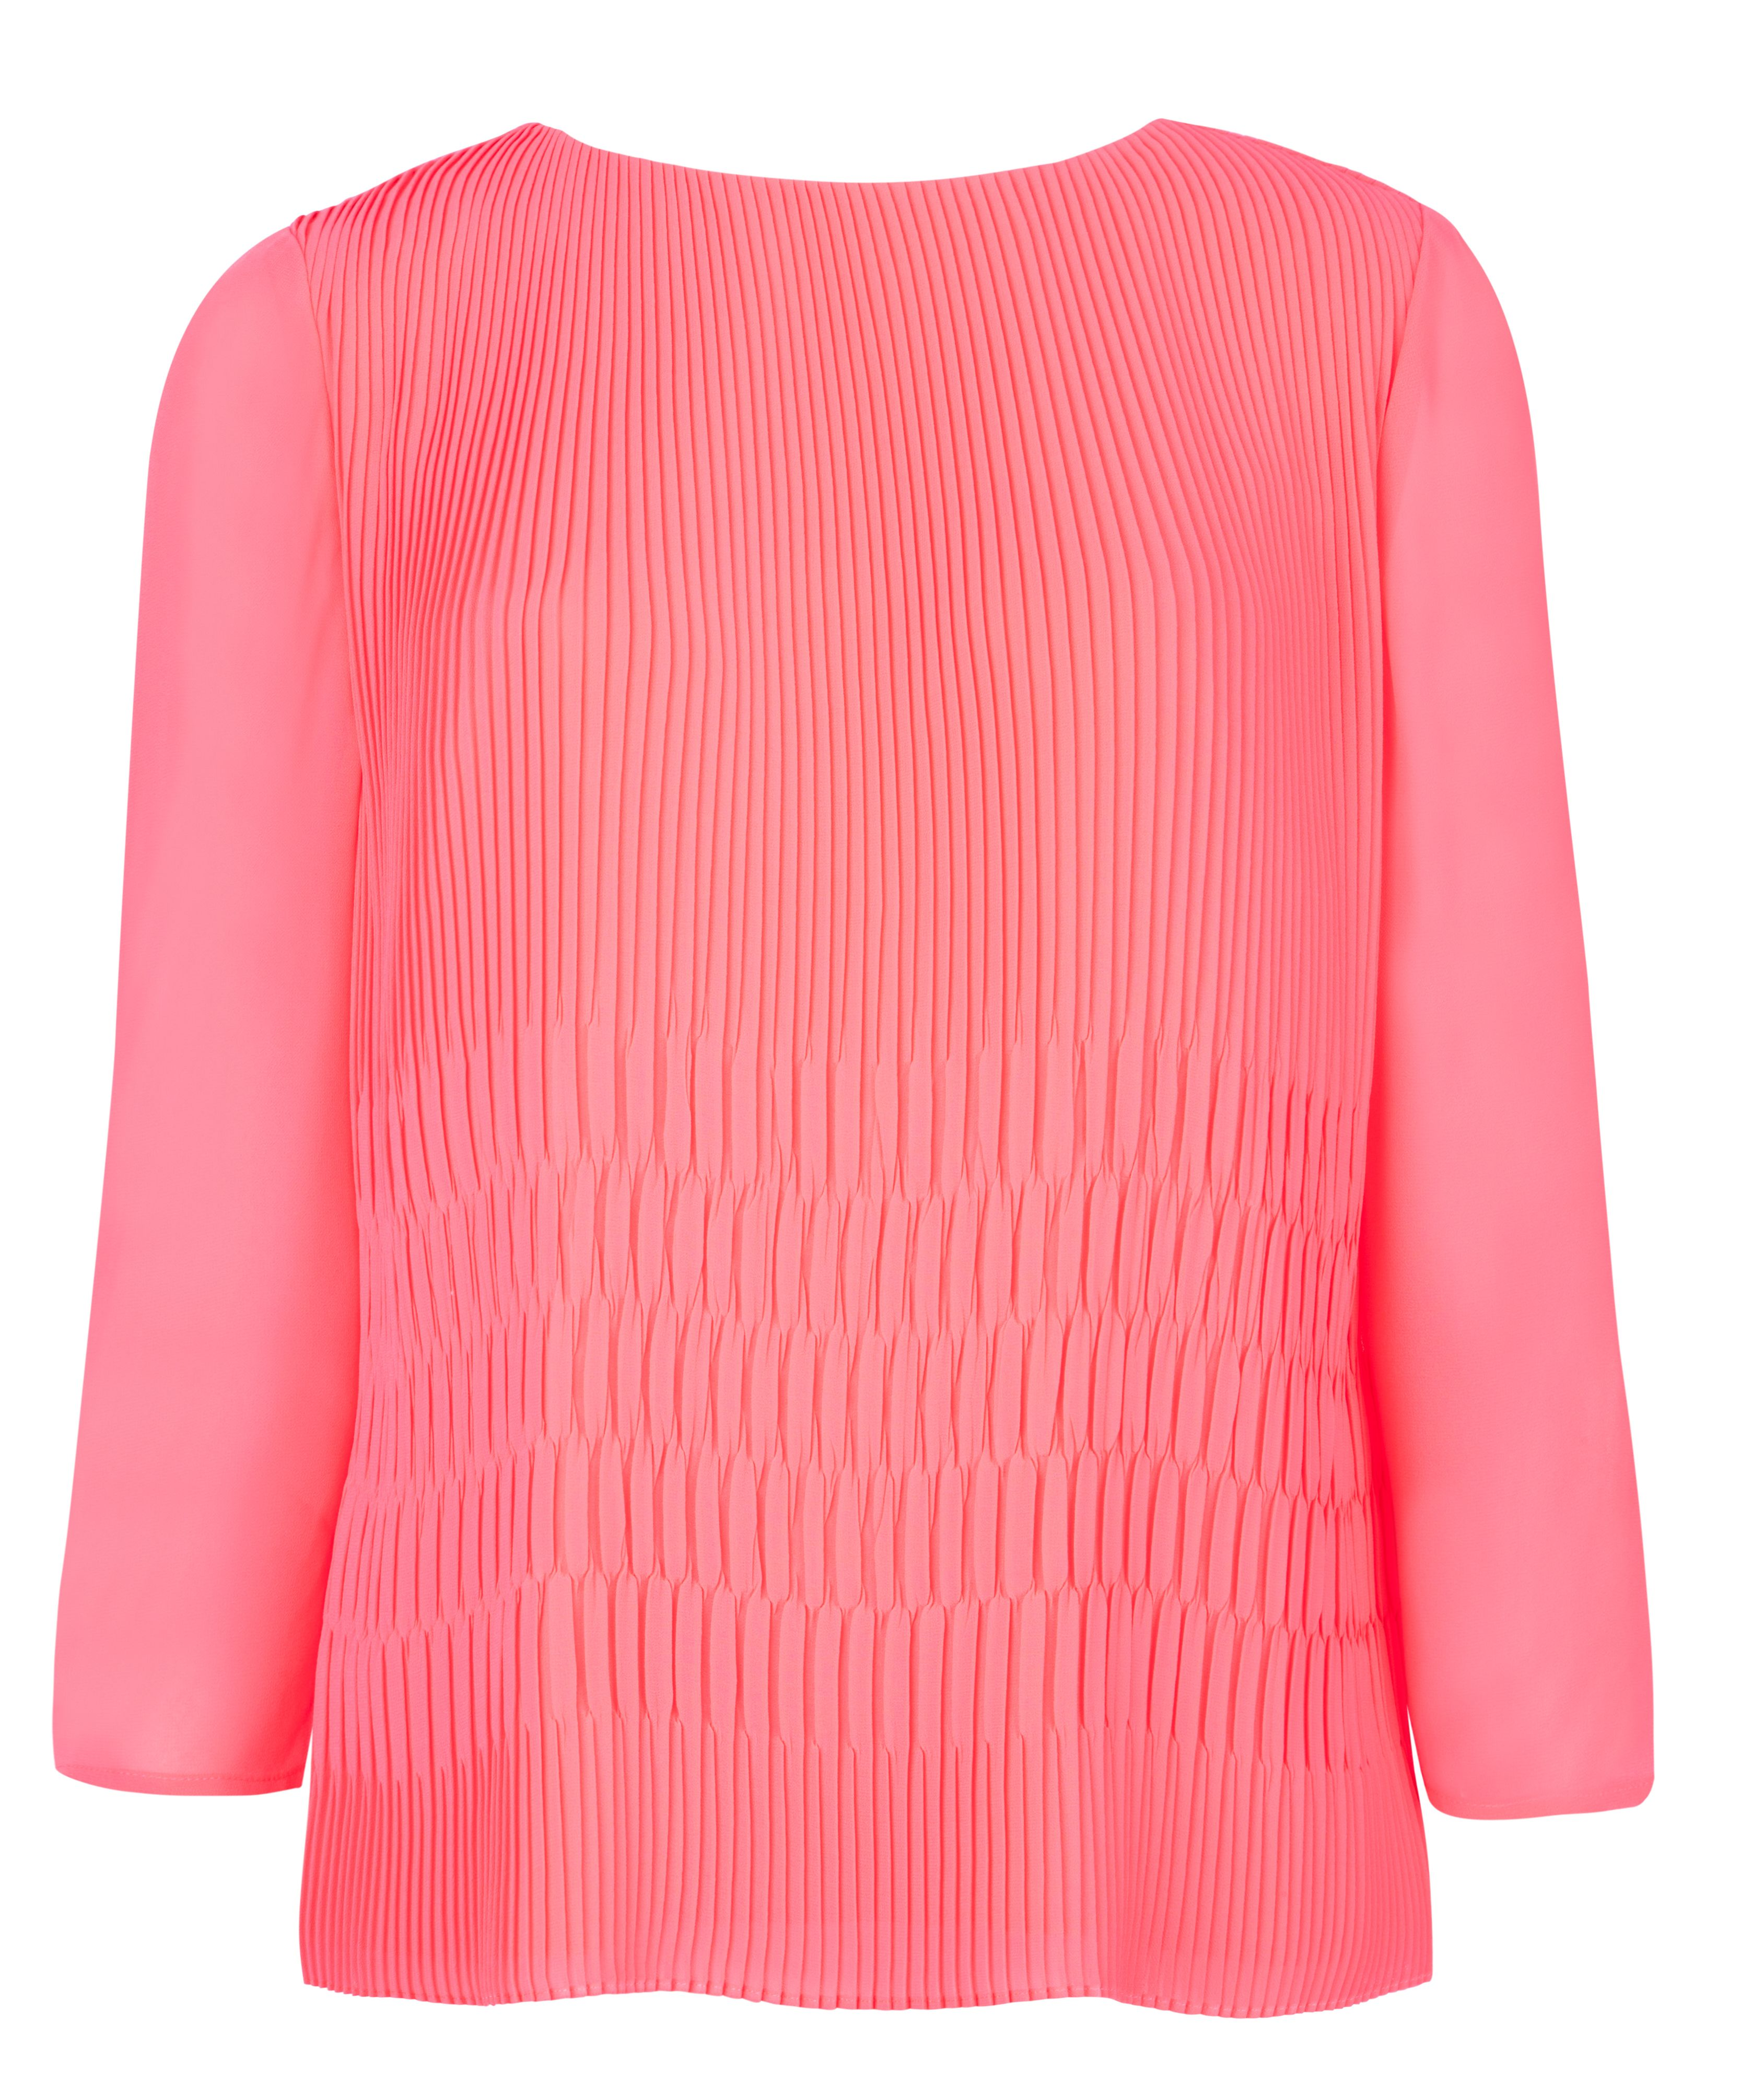 Gyda pleated top